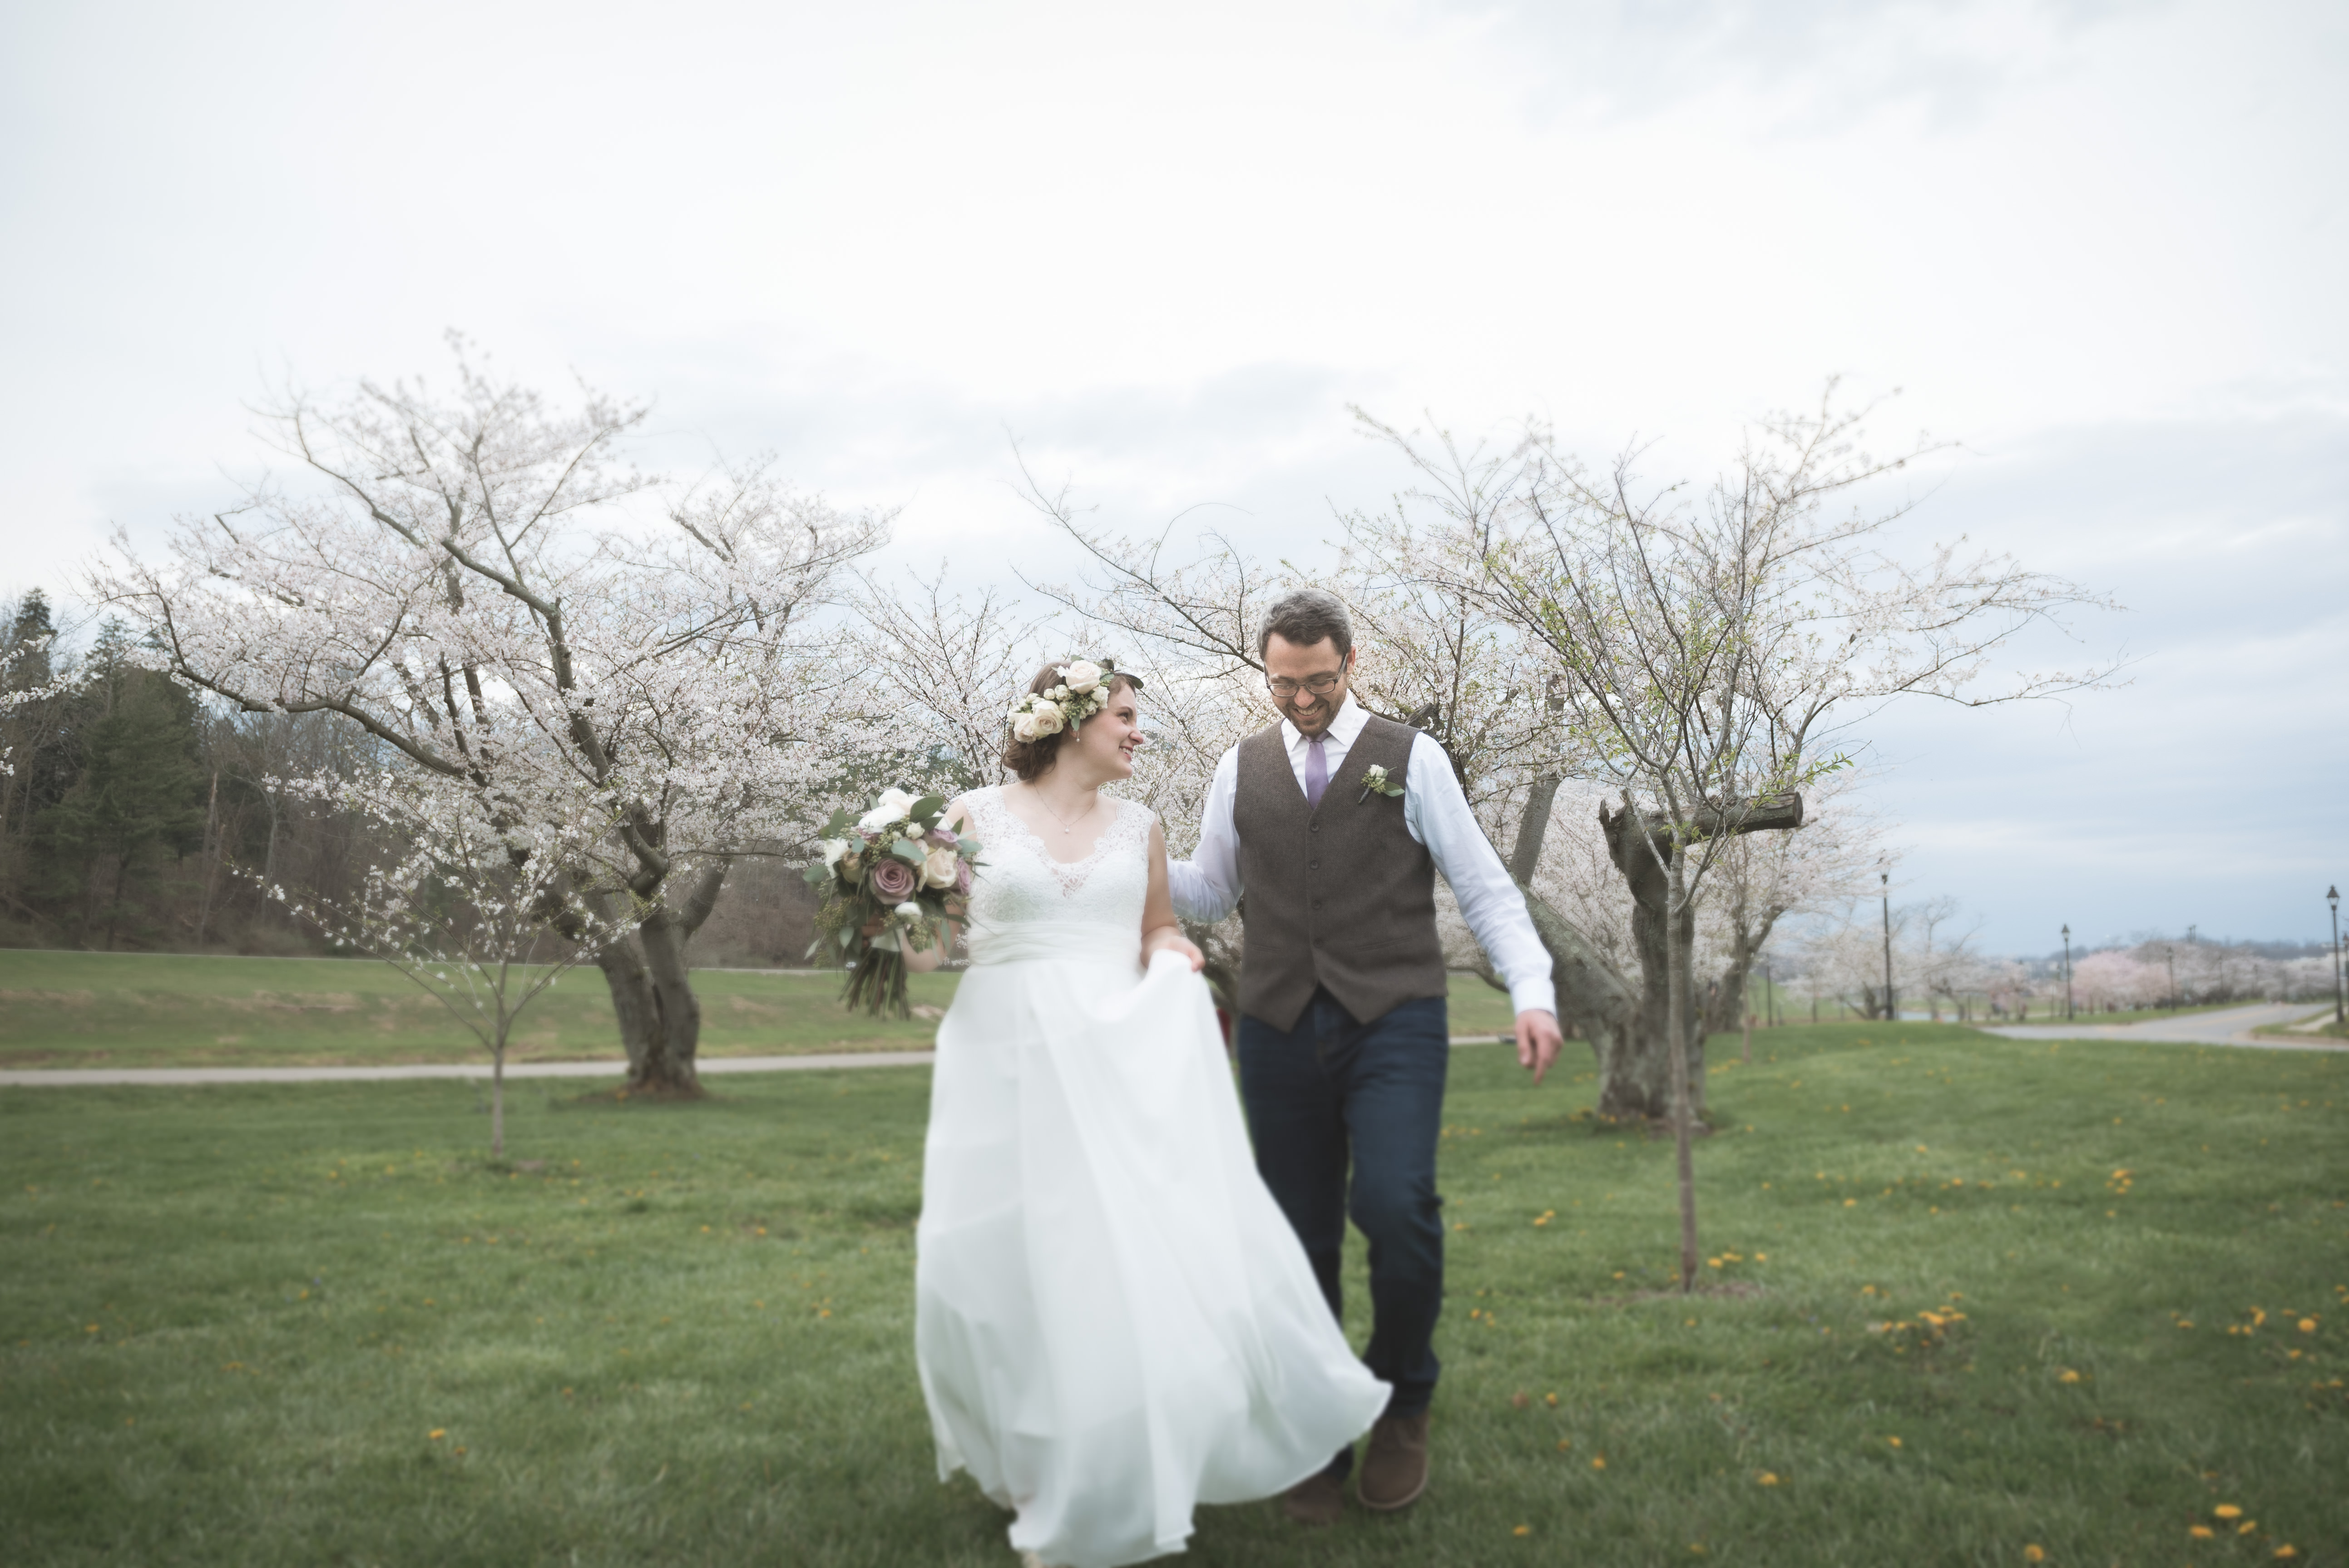 wedding bride and groom walk under cherry blossom trees in the spring in athens ohio